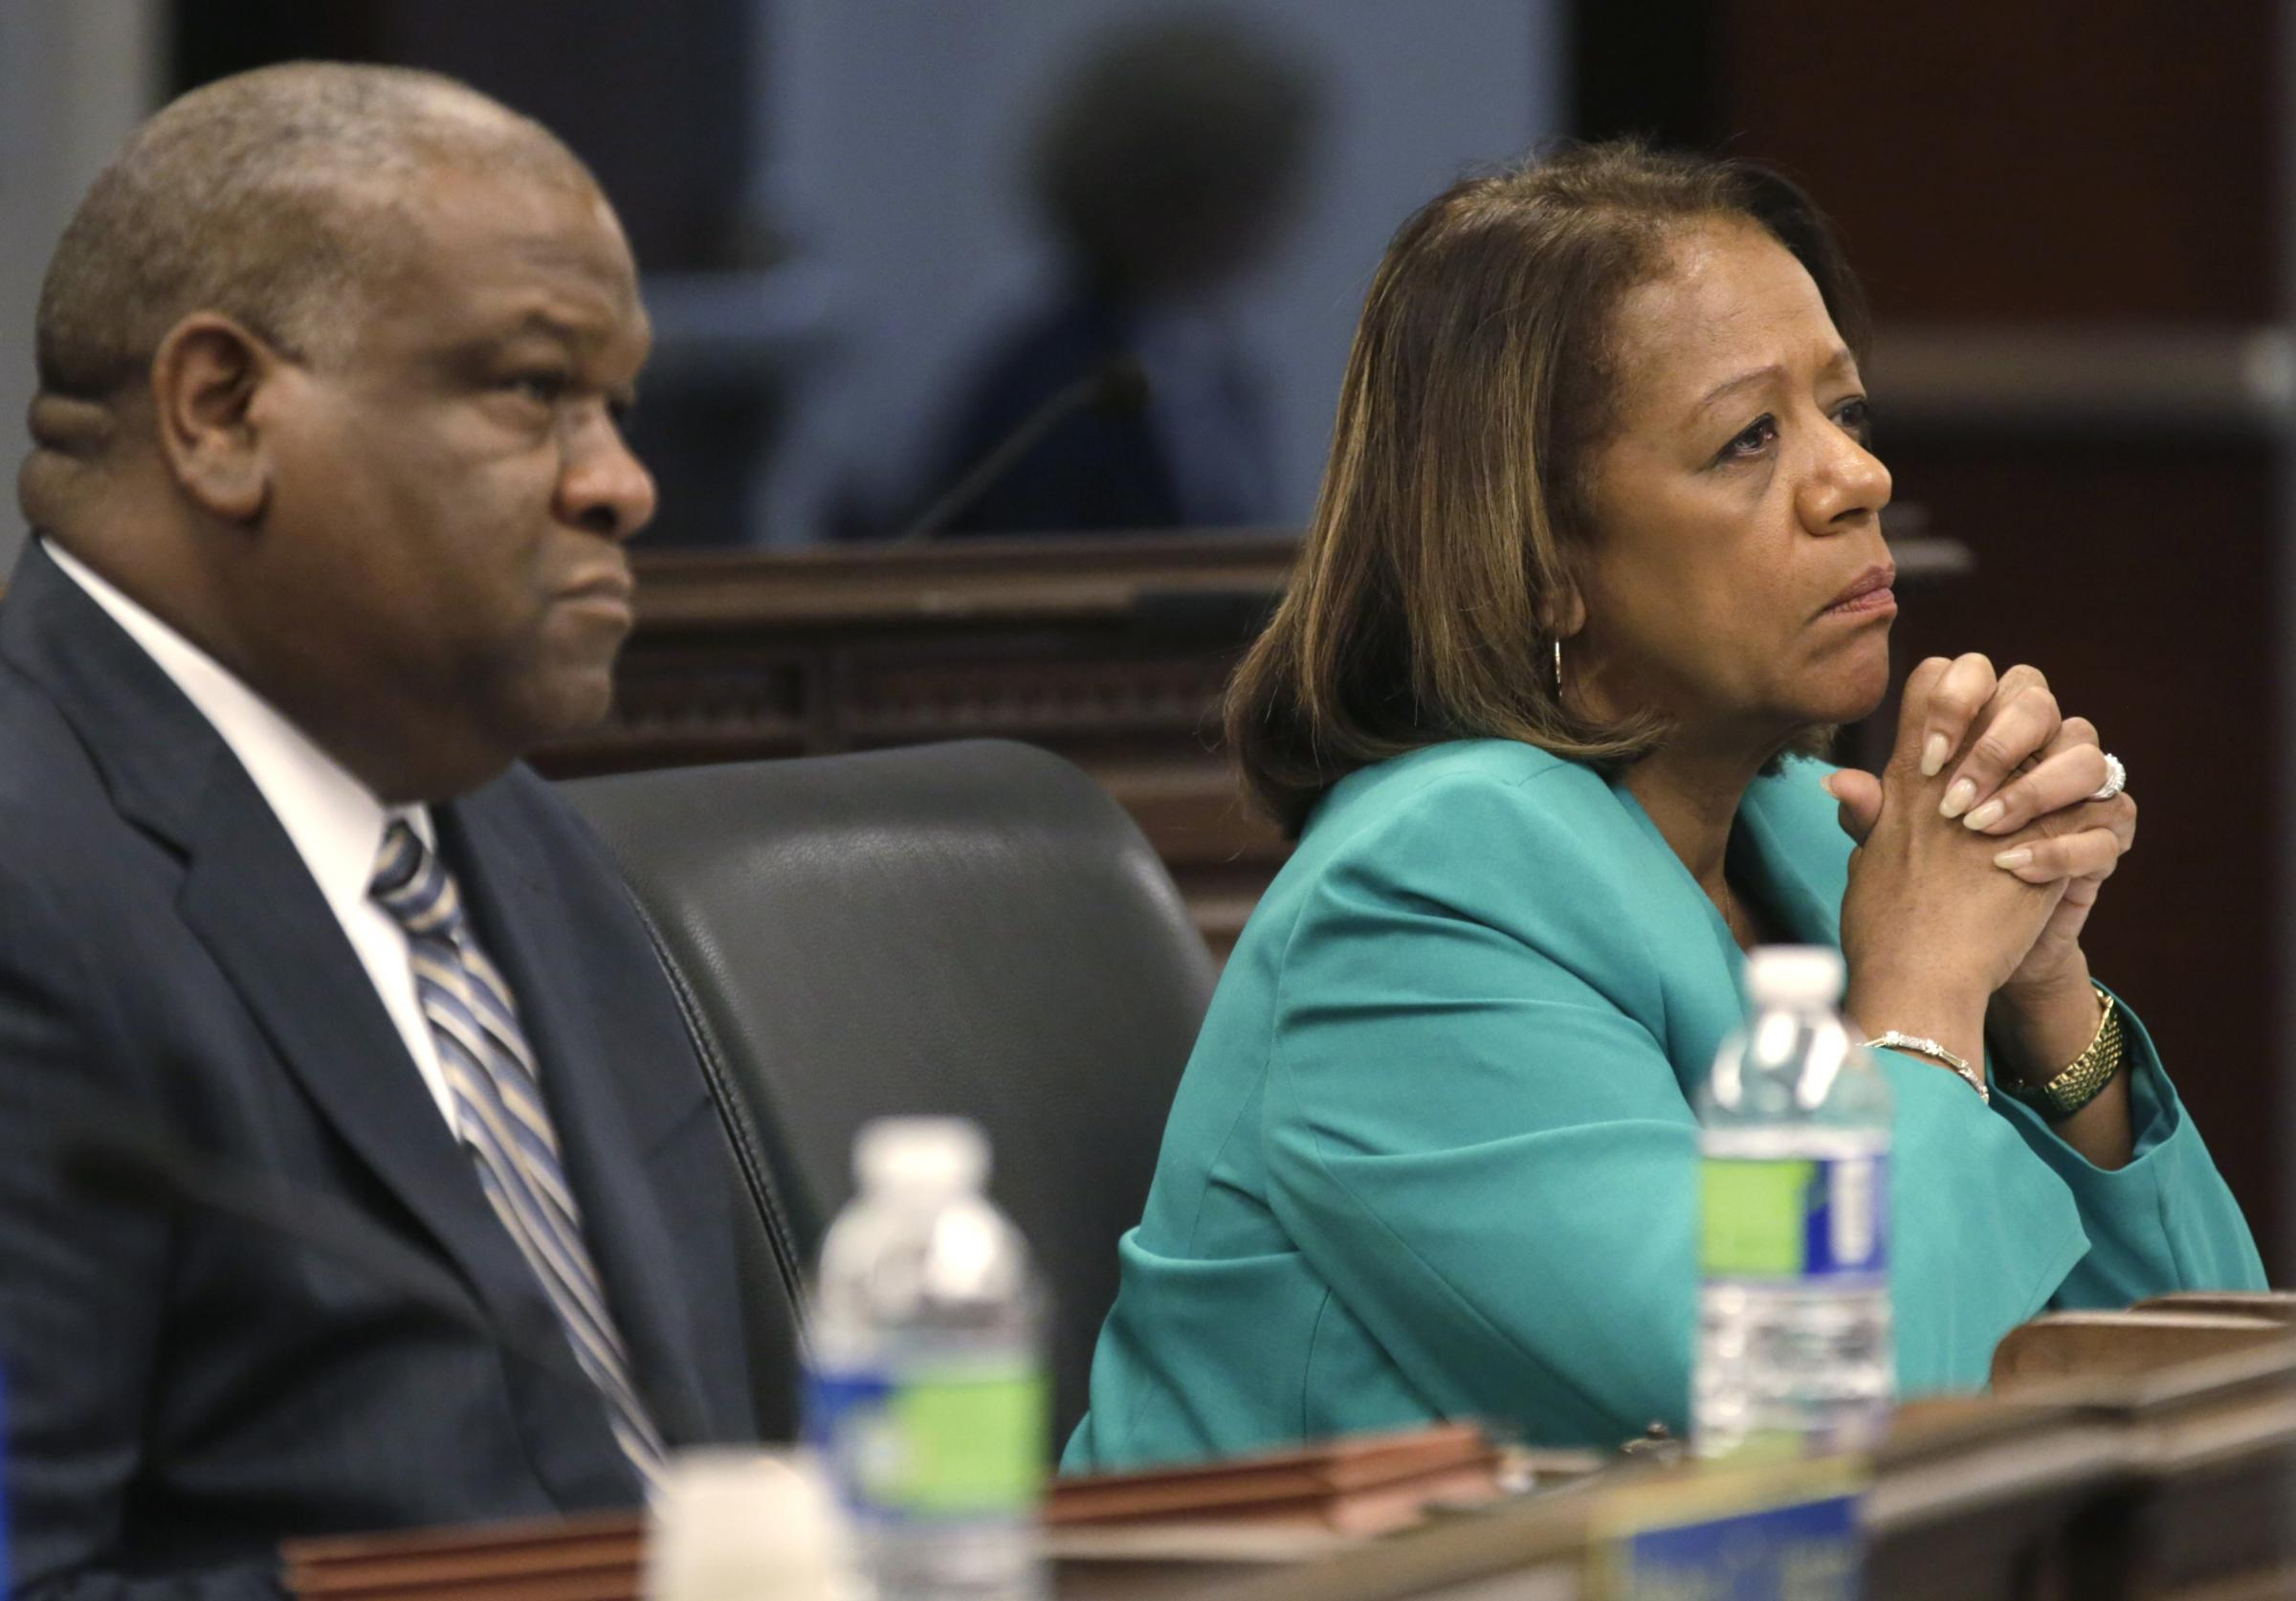 Chicago Public Schools CEO Barbara Byrd-Bennett and Board of Education  General Counsel James Bebley. View Slideshow 2 of 2